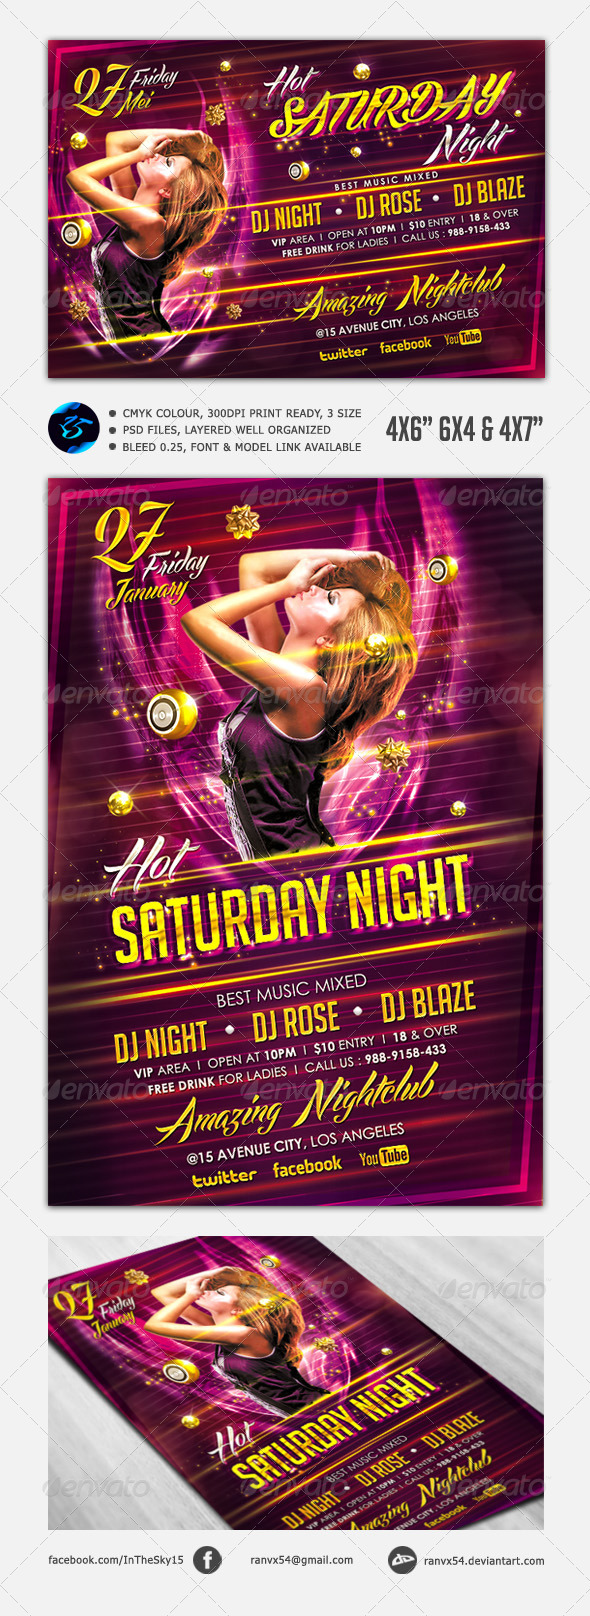 Hot Saturday Night Flyer Template - Clubs & Parties Events